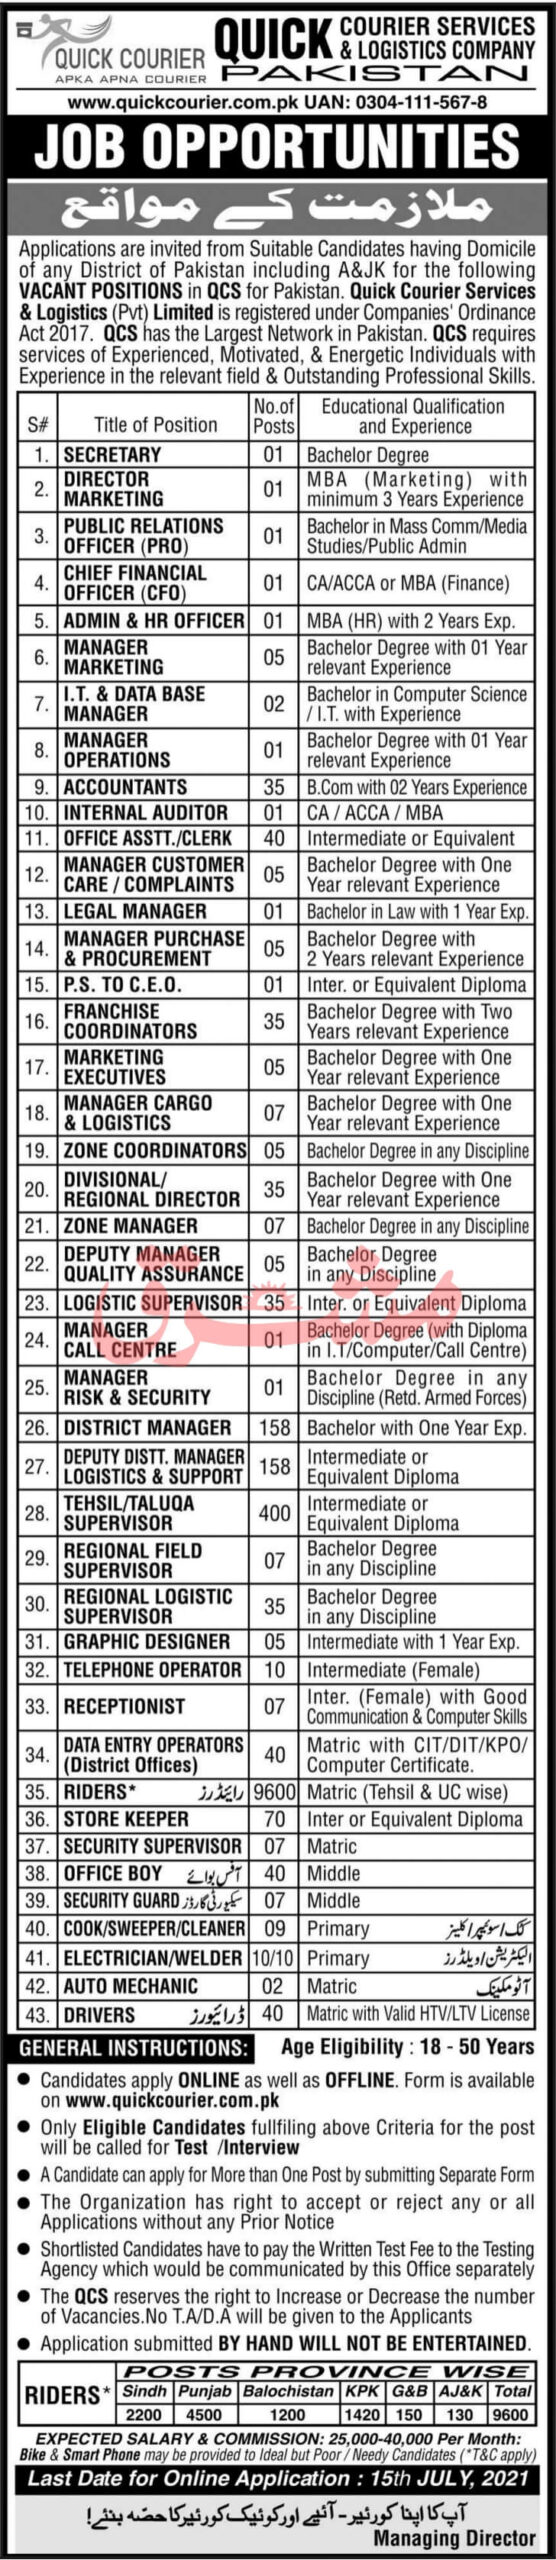 Quick Courier Services and Logistics Company Pakistan Jobs 2021 Online Apply